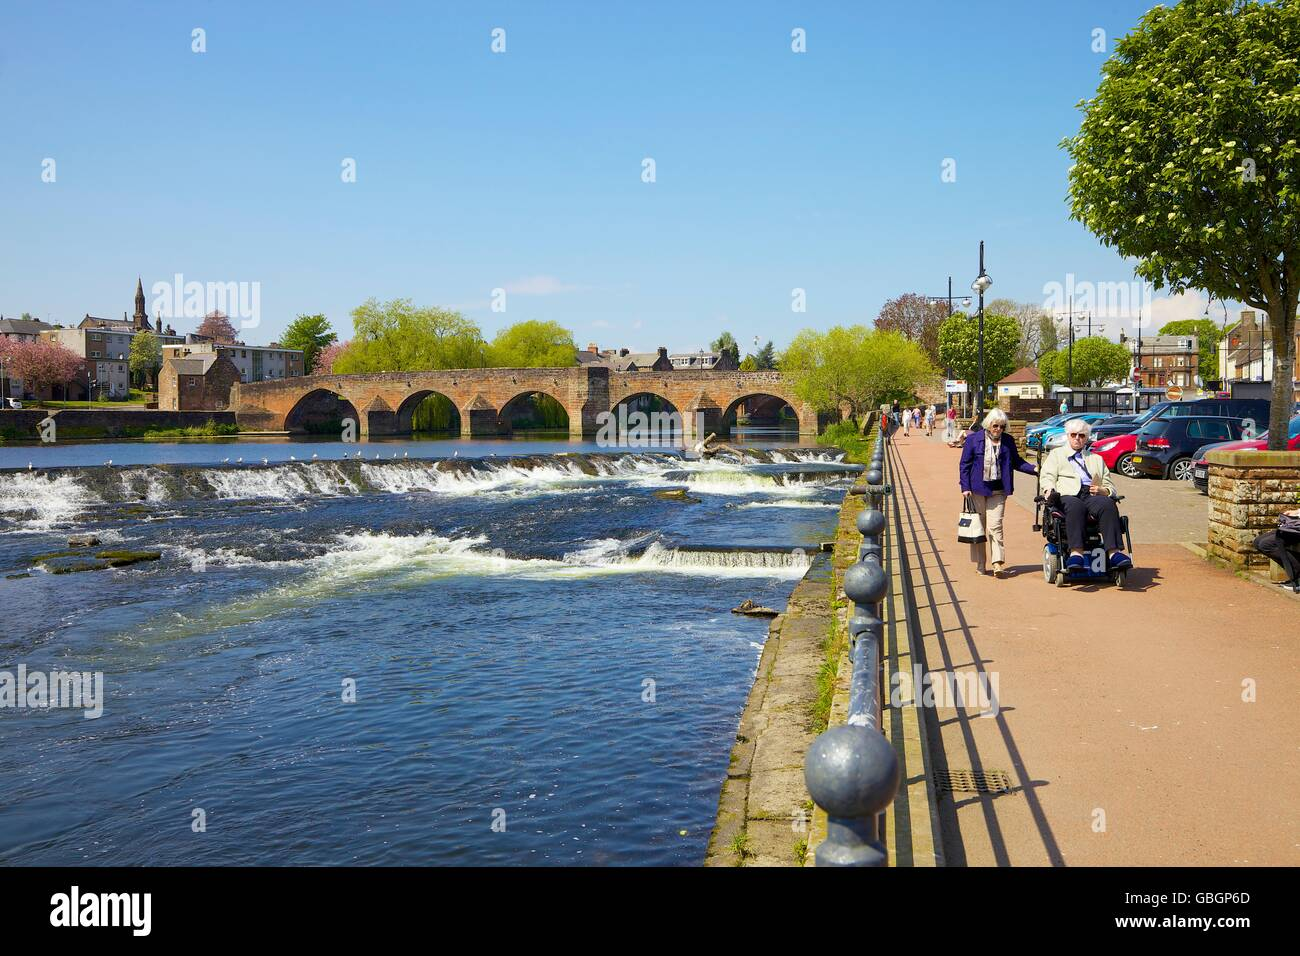 People on river embankment. River Nith, White Sands, Dumfries, Dumfries & Galloway, Scotland, United Kingdom, - Stock Image